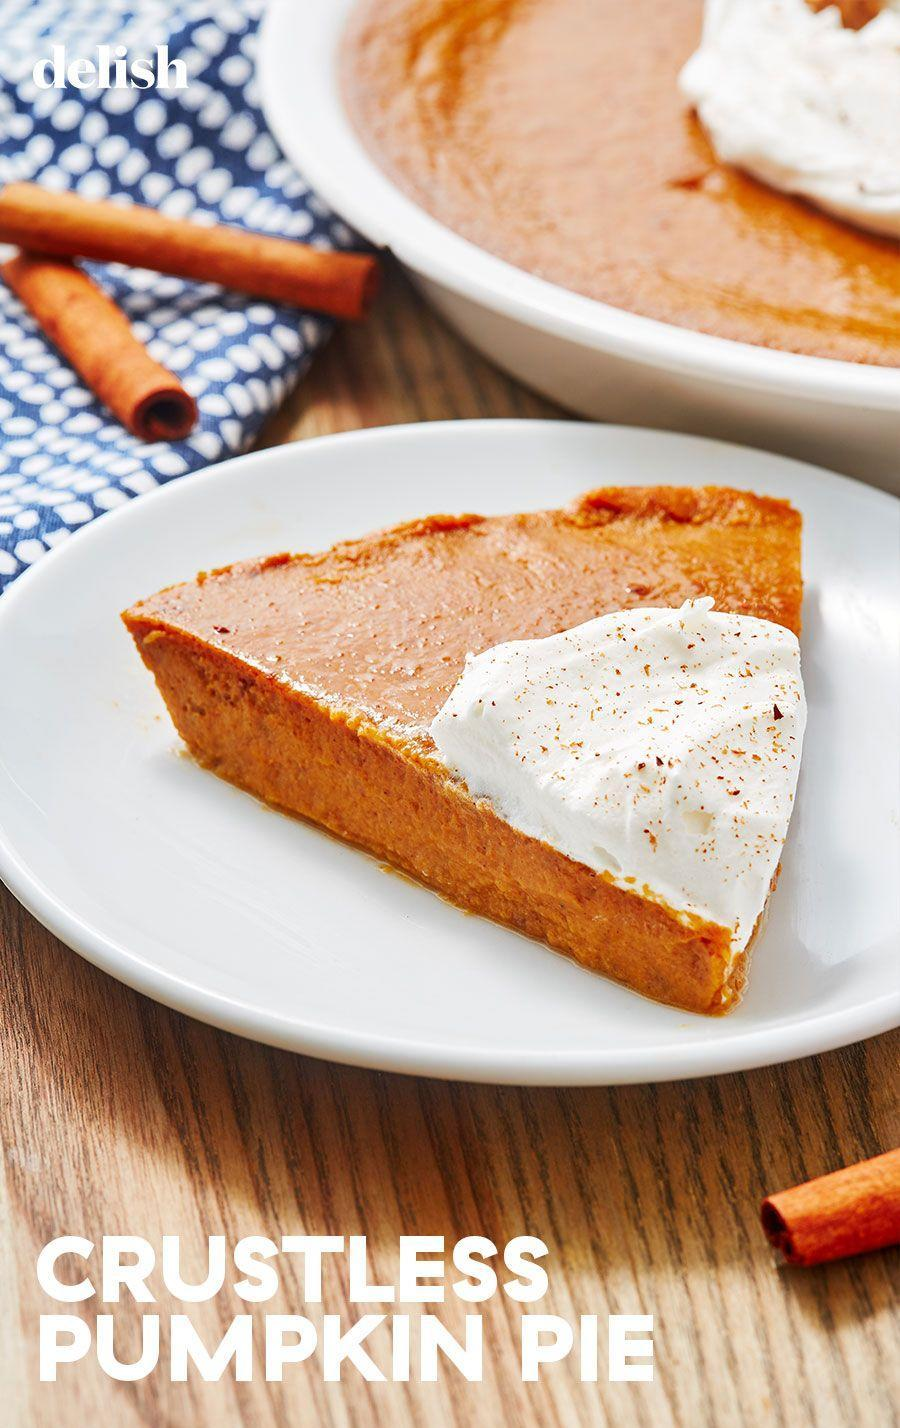 """<p>Focus on what's really important: That pumpkin filling. </p><p>Get the recipe from <a href=""""https://www.delish.com/cooking/recipe-ideas/a28576182/crustless-pumpkin-pie-recipe/"""" rel=""""nofollow noopener"""" target=""""_blank"""" data-ylk=""""slk:Delish"""" class=""""link rapid-noclick-resp"""">Delish</a>.</p>"""